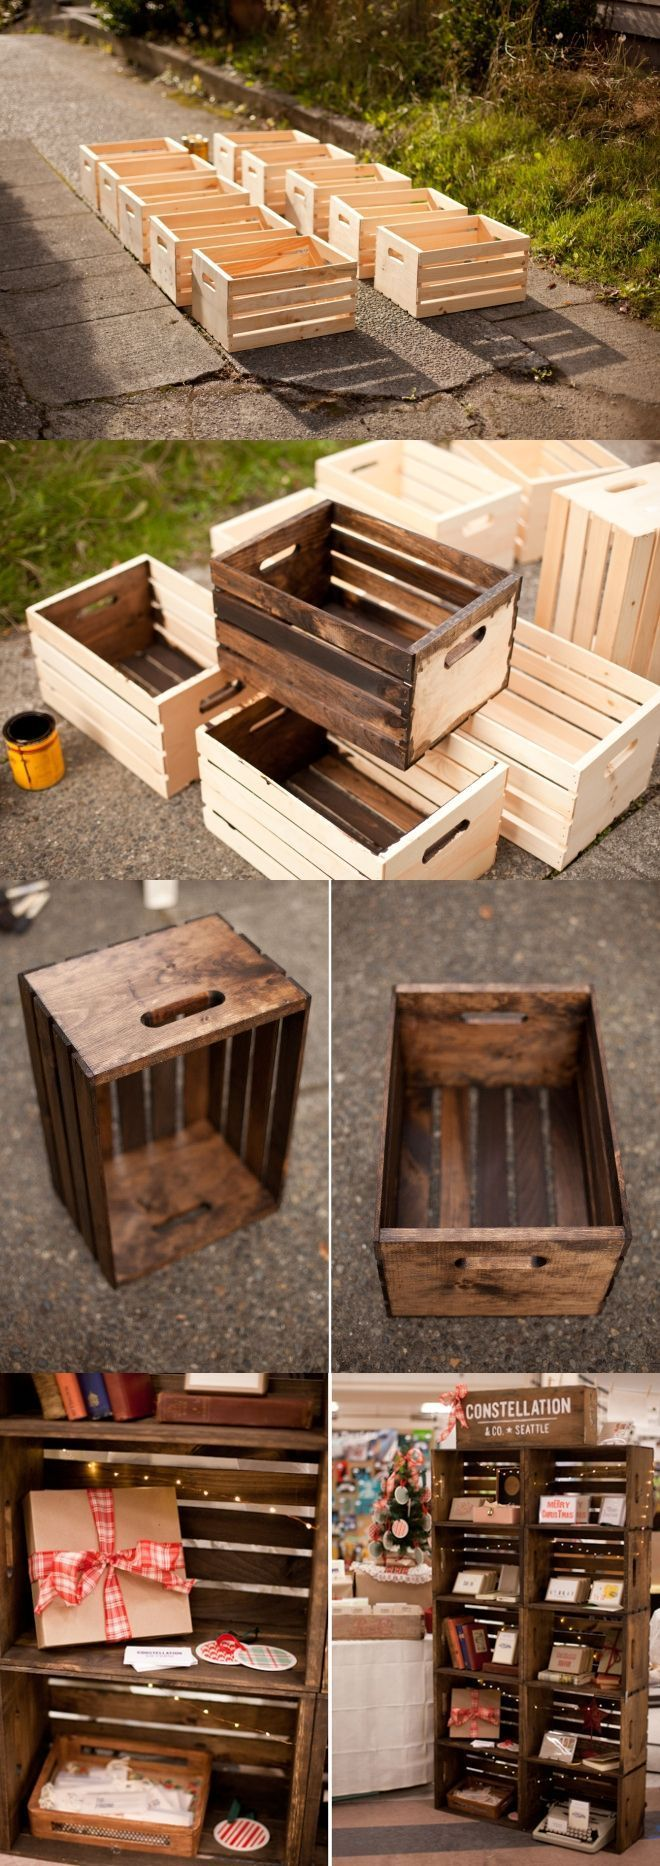 Apple Crates Storageorganization Home Decor Crafts Home Projects